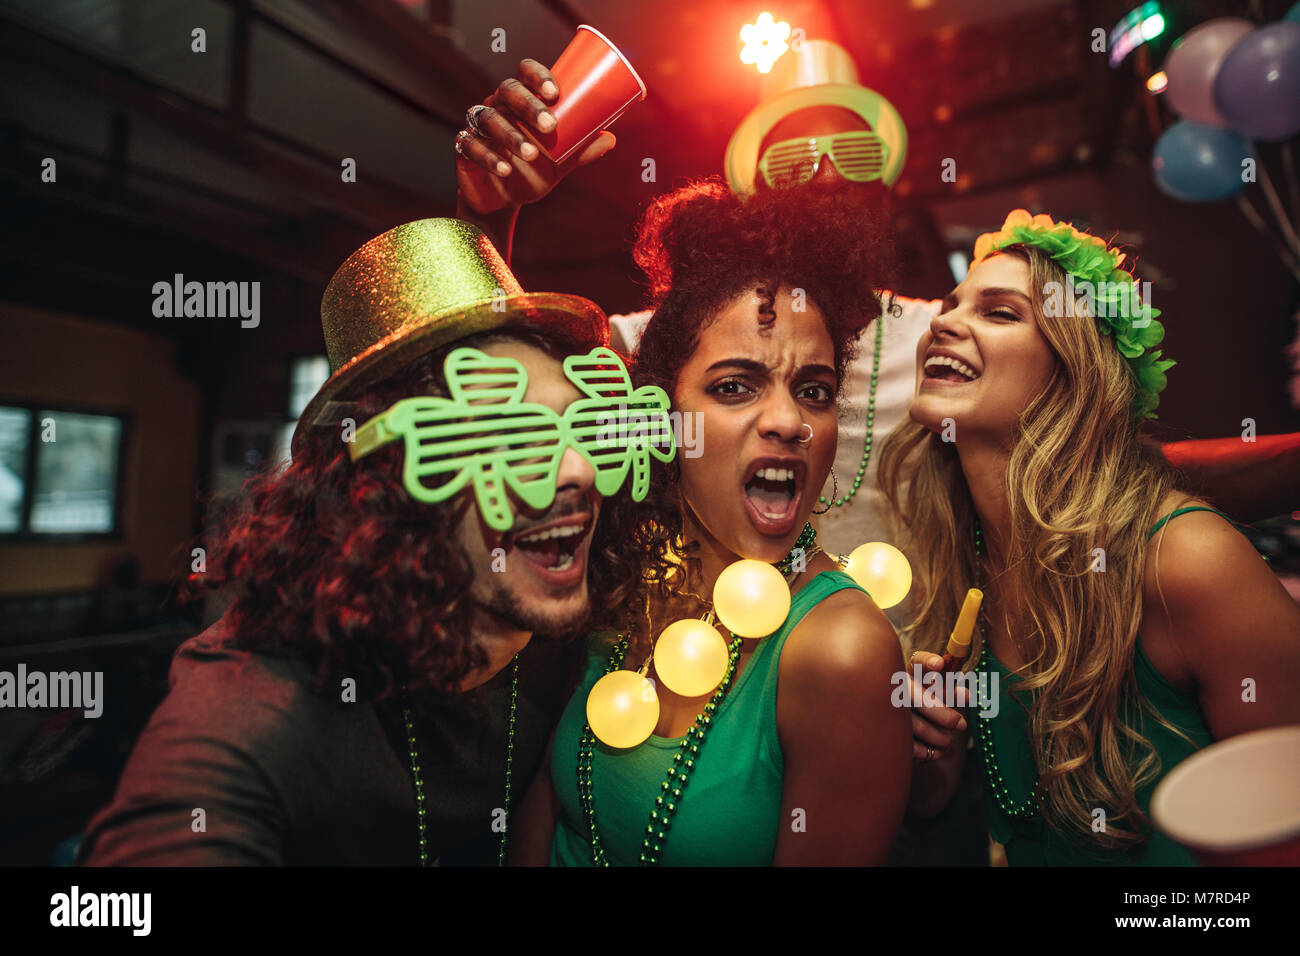 Group of young friends celebrating St. Patrick's Day at bar. People having fun at the bar. - Stock Image